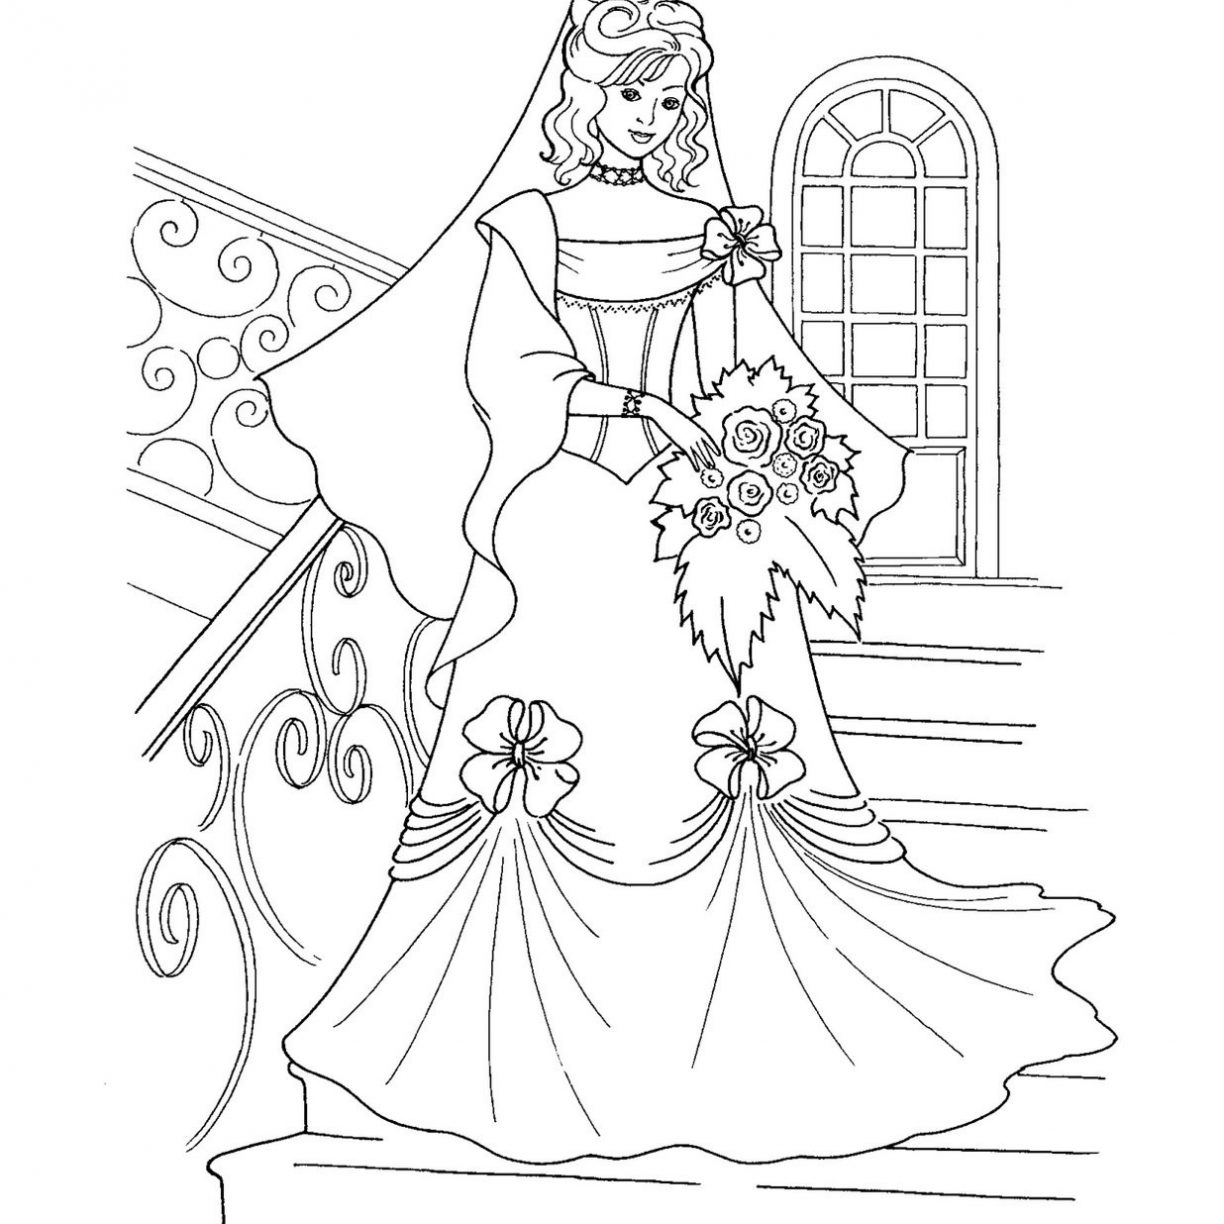 Hogwarts Castle Coloring Page At Getdrawings